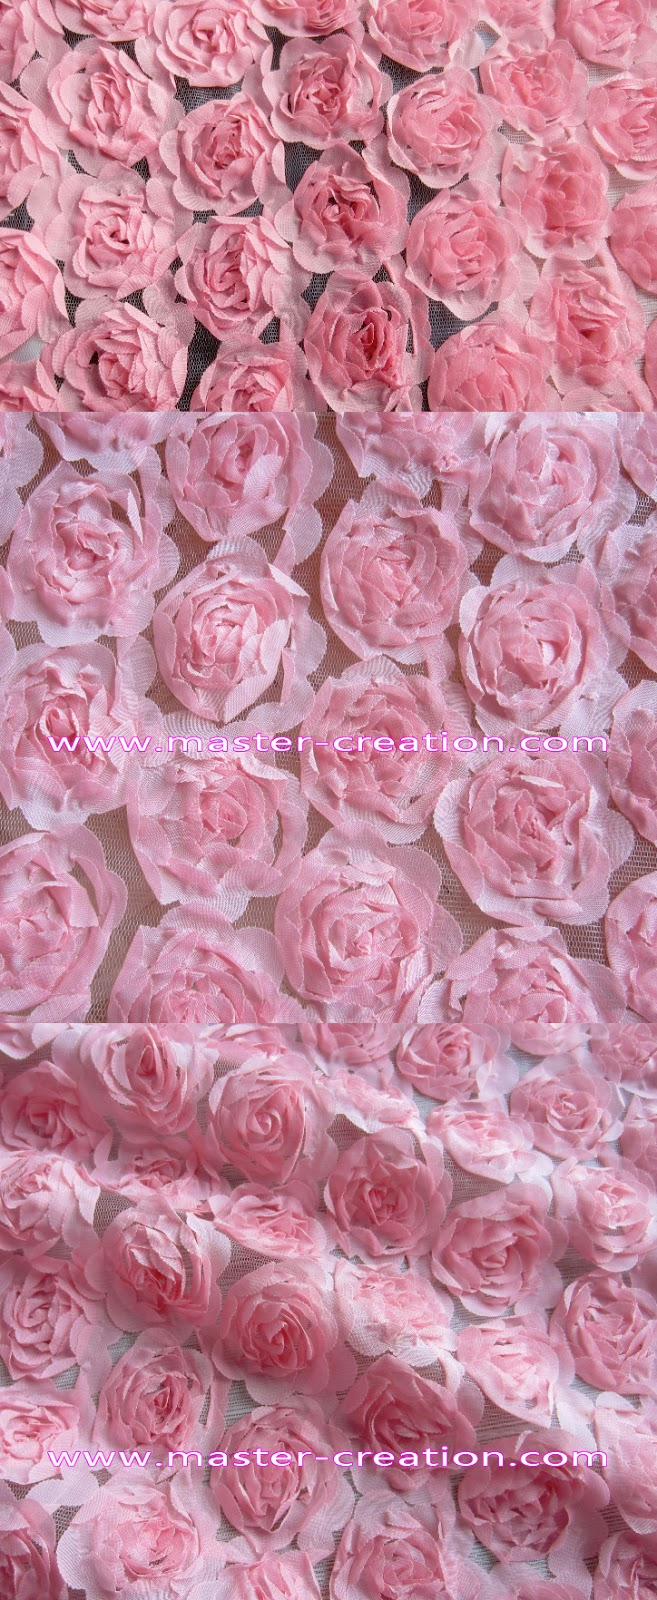 pink rose bestrewed cloth